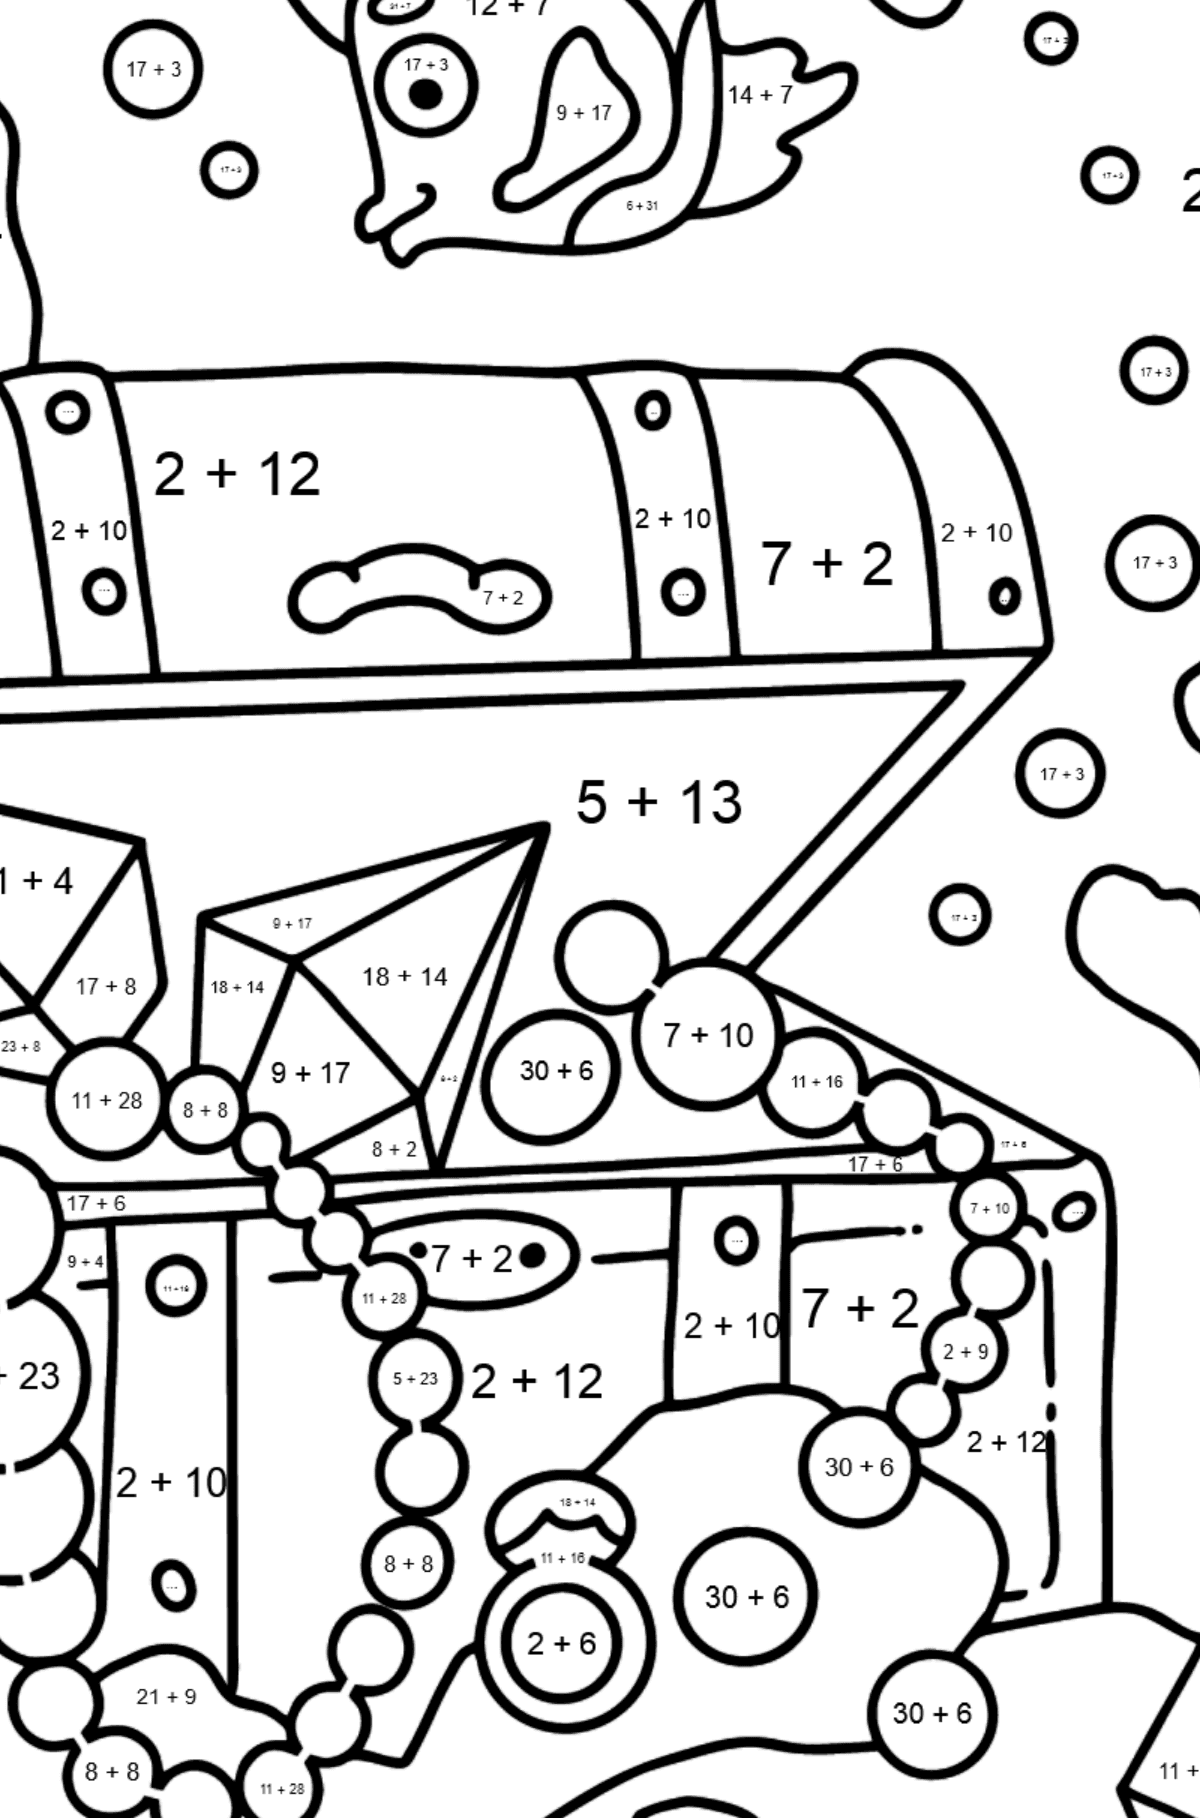 Coloring Page - A Fish is Taking a Peek at a Treasure - Math Coloring - Addition for Kids